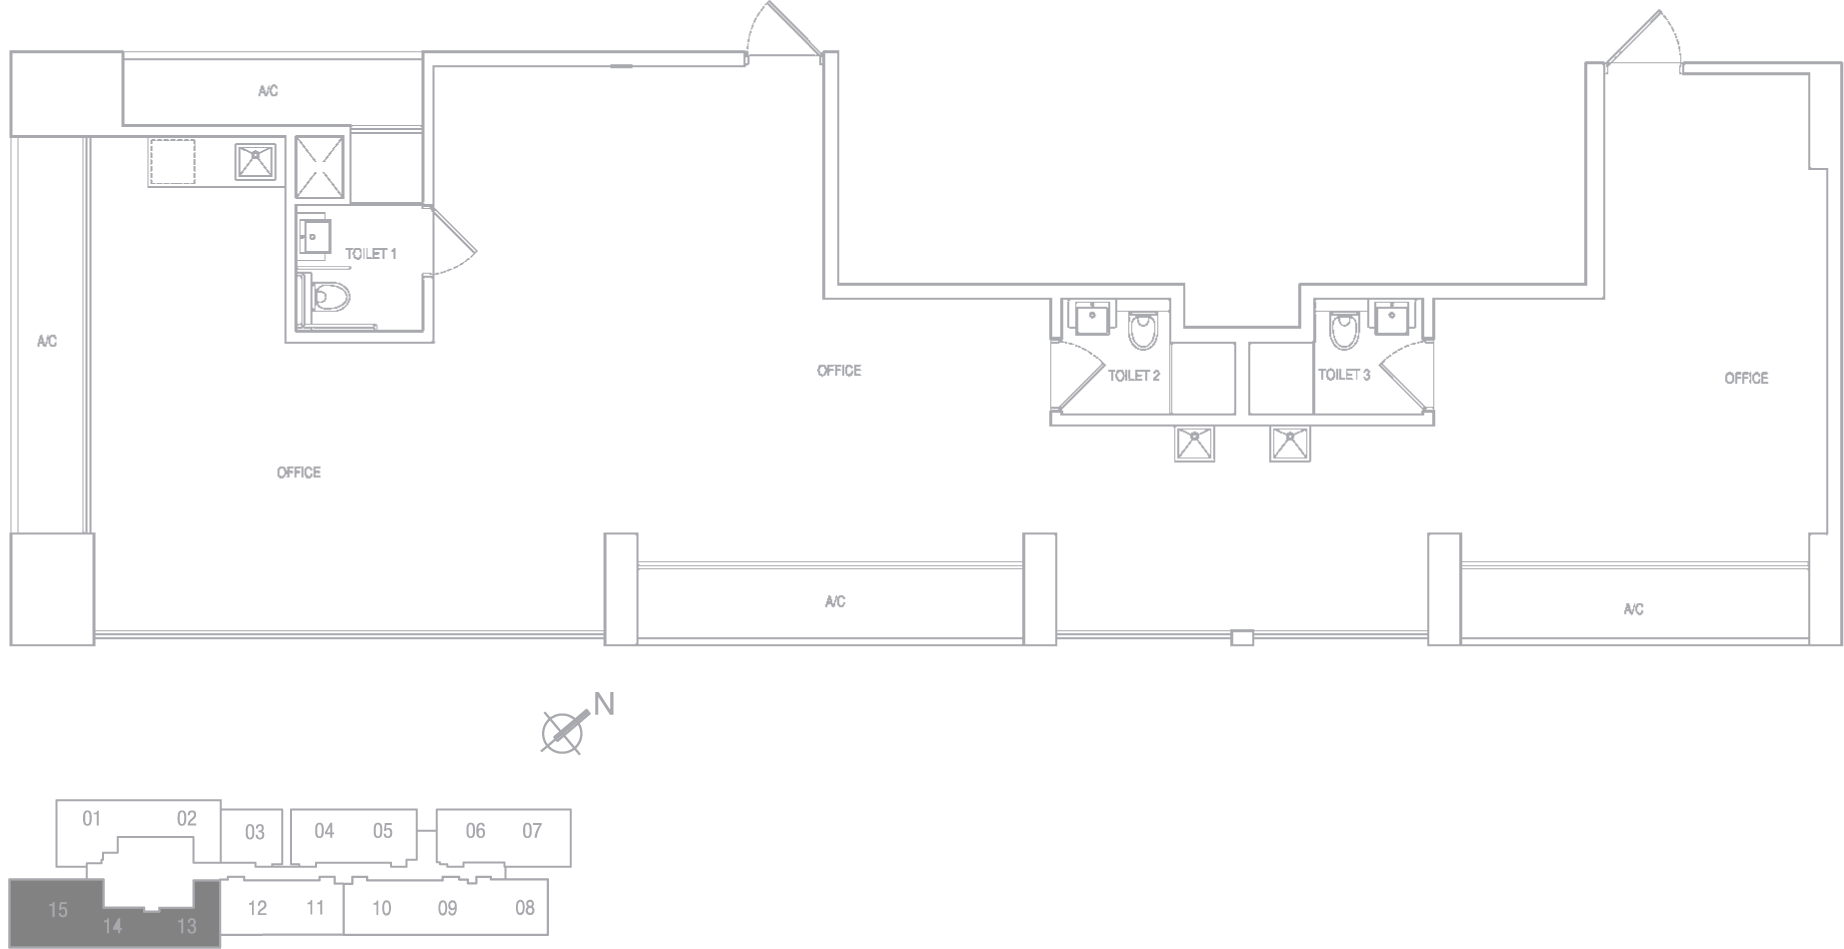 Type G Shop Floor Plan